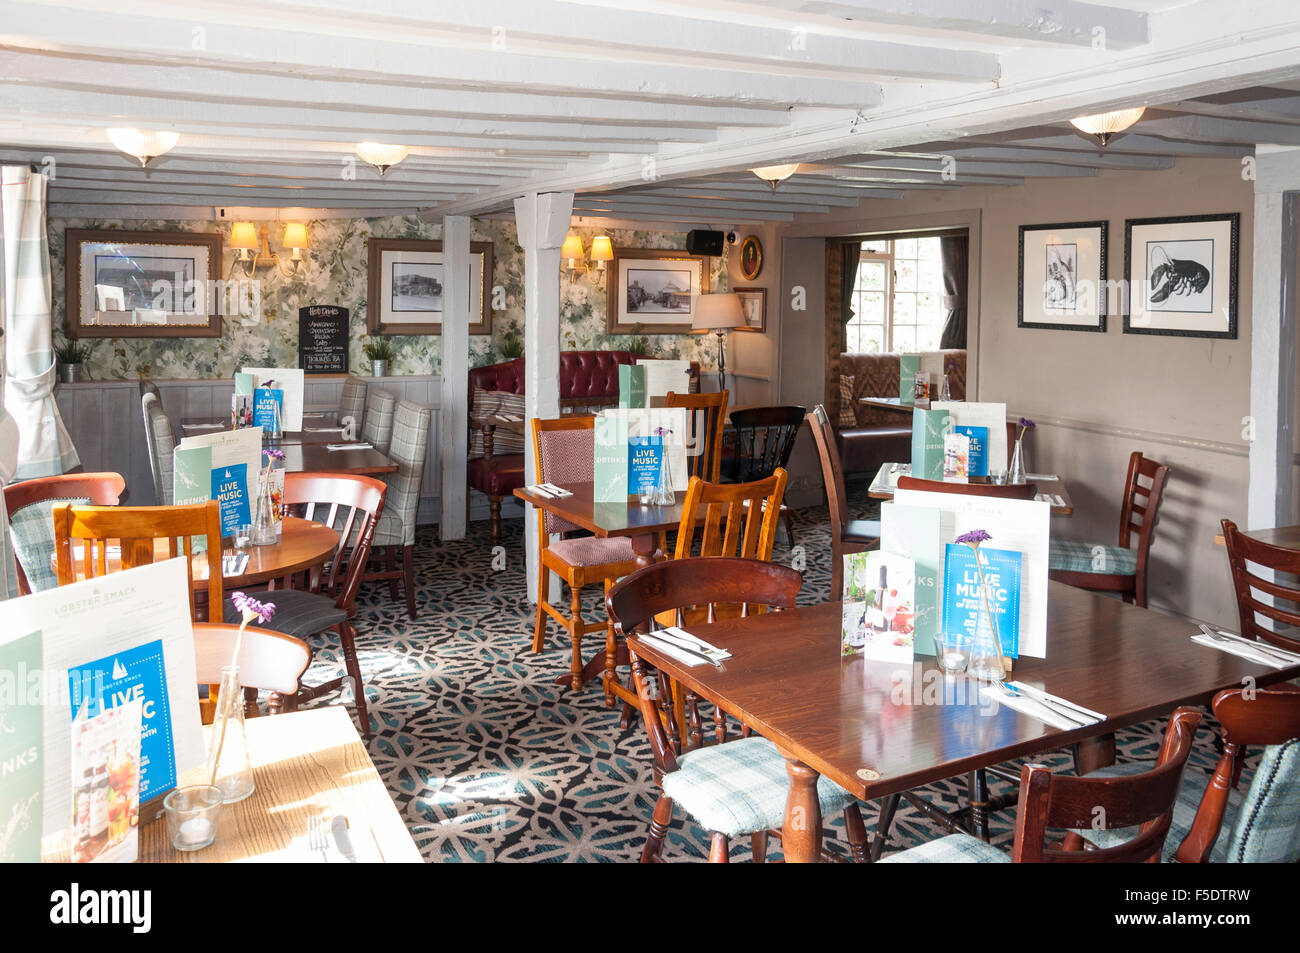 Interior dining room of The Lobster Smack Pub, Haven Road, Canvey Island, Essex, England, United Kingdom - Stock Image